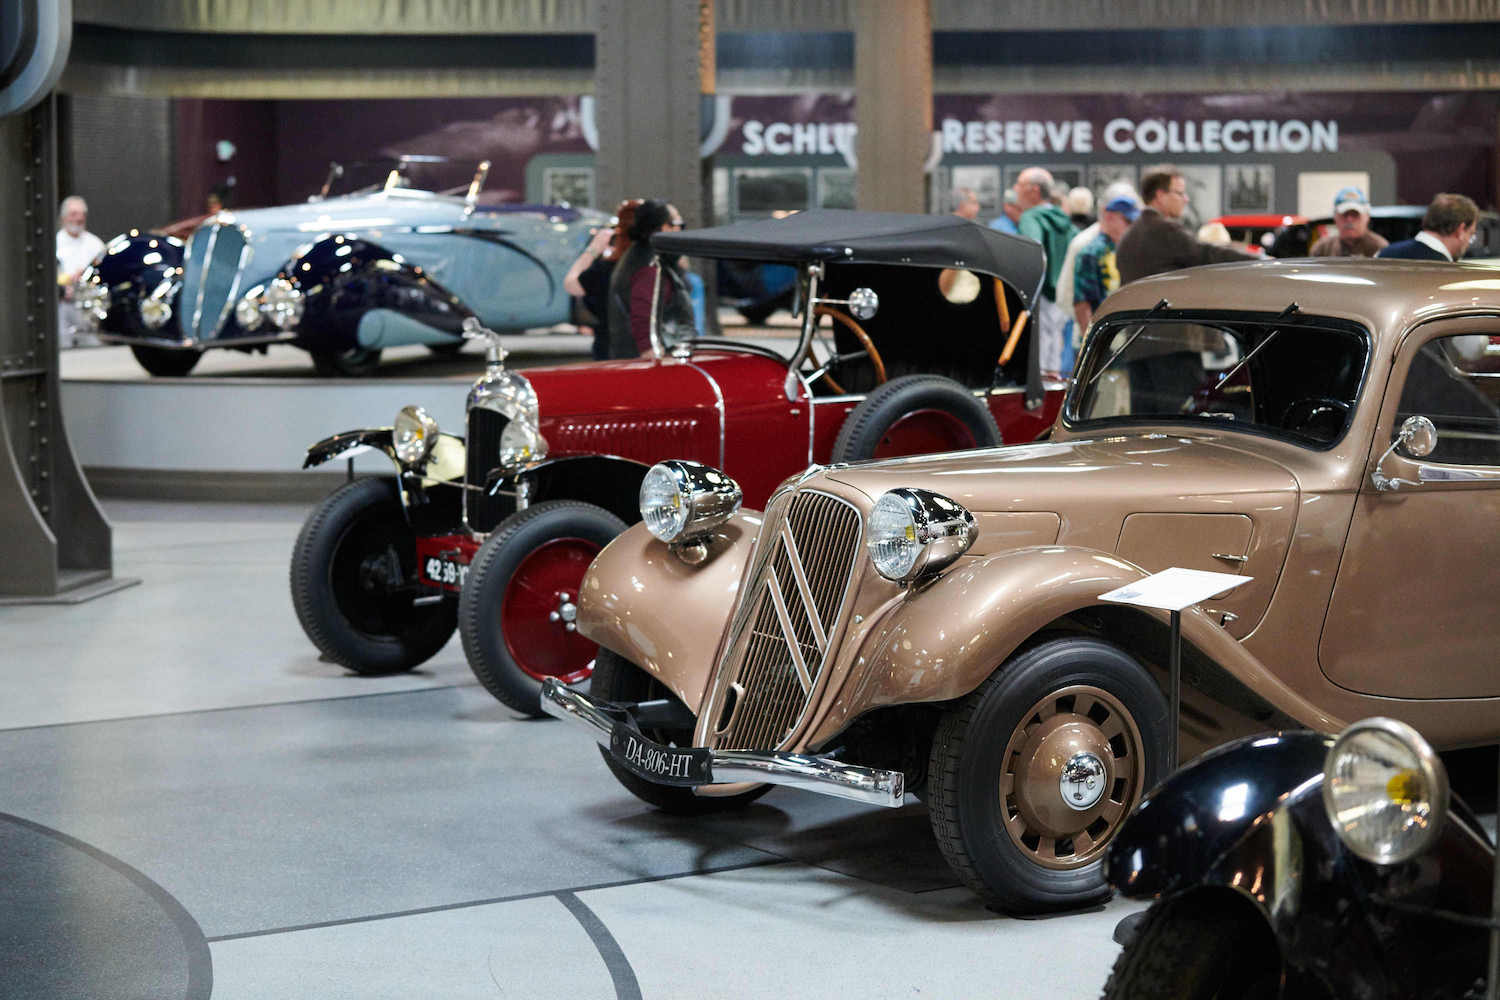 vintage cars on museum display floor